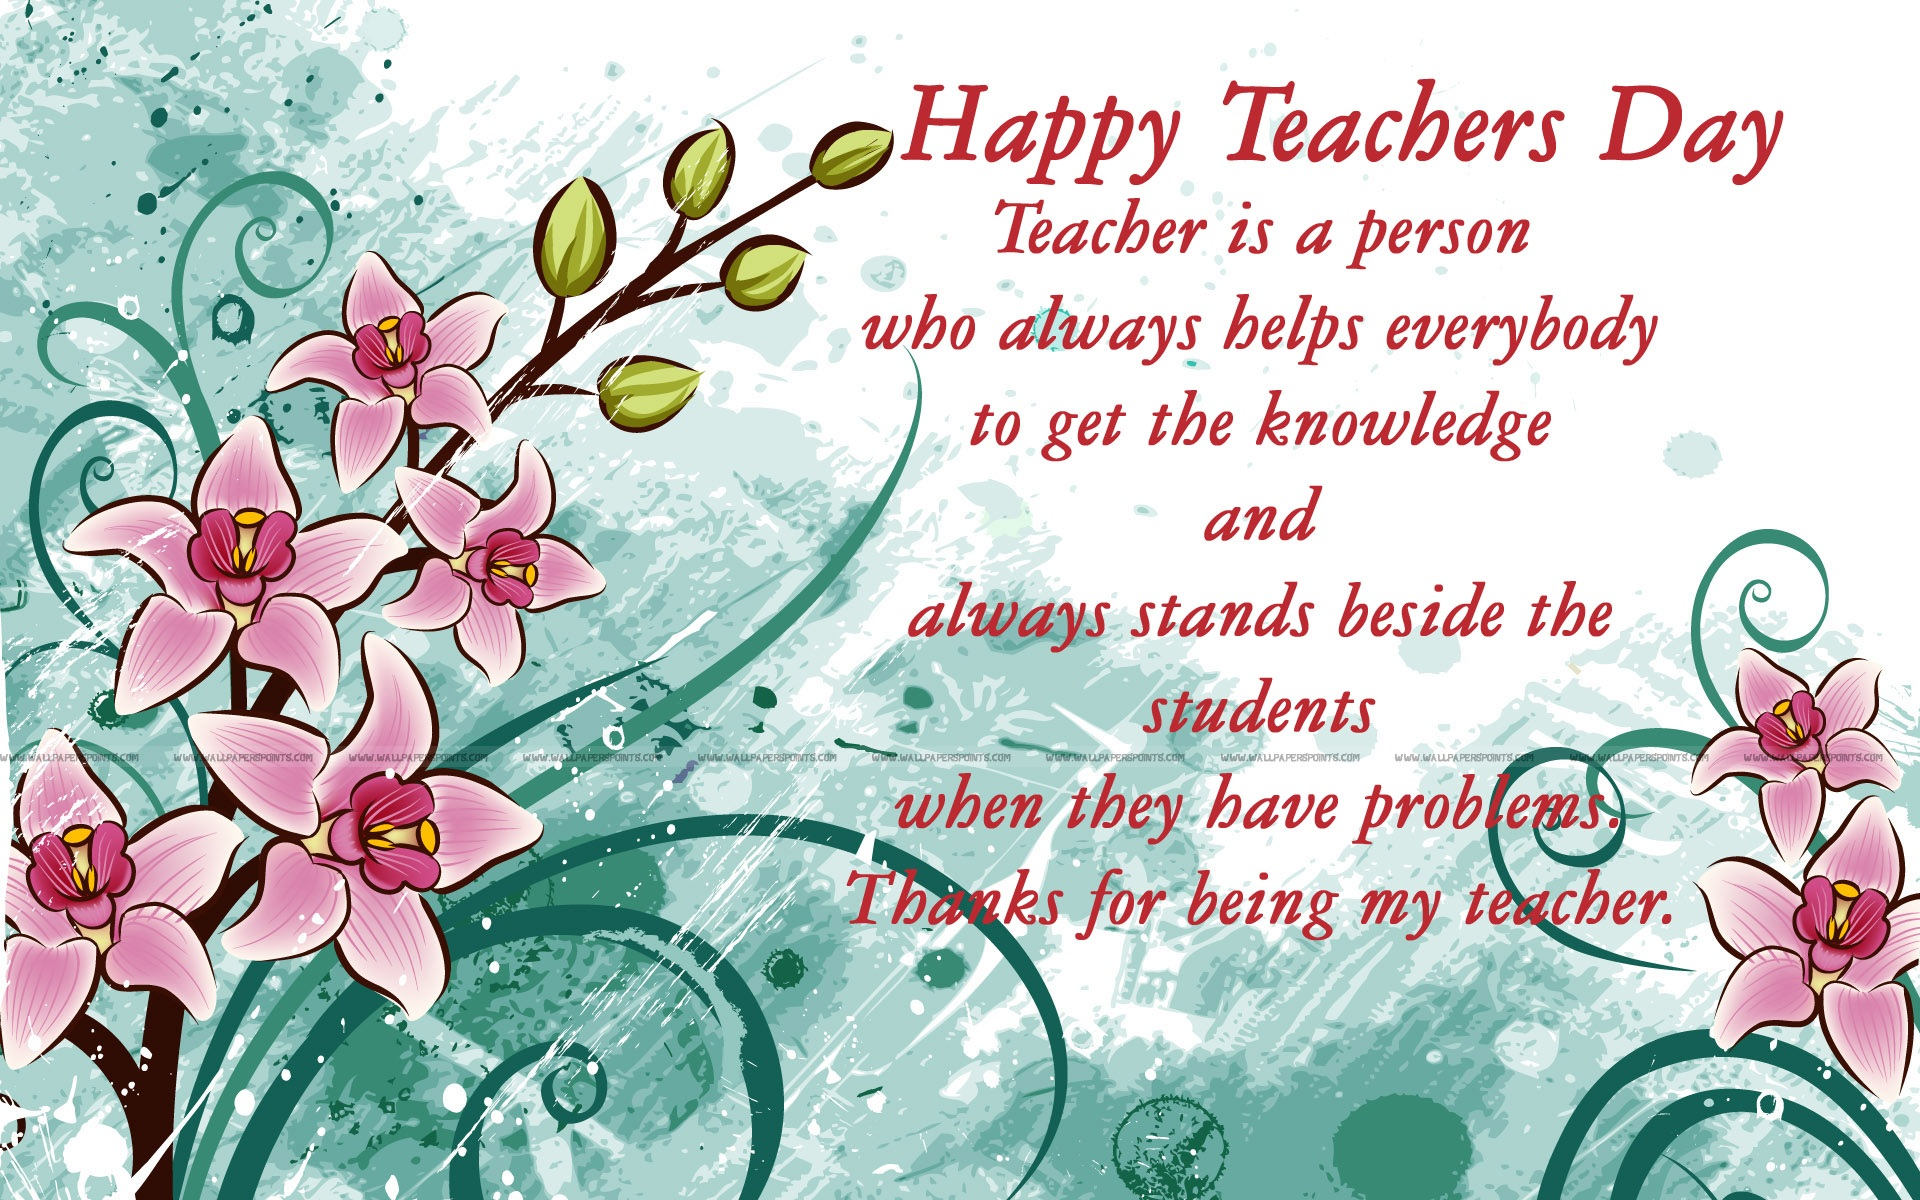 Teachers Day Special Wallpaper